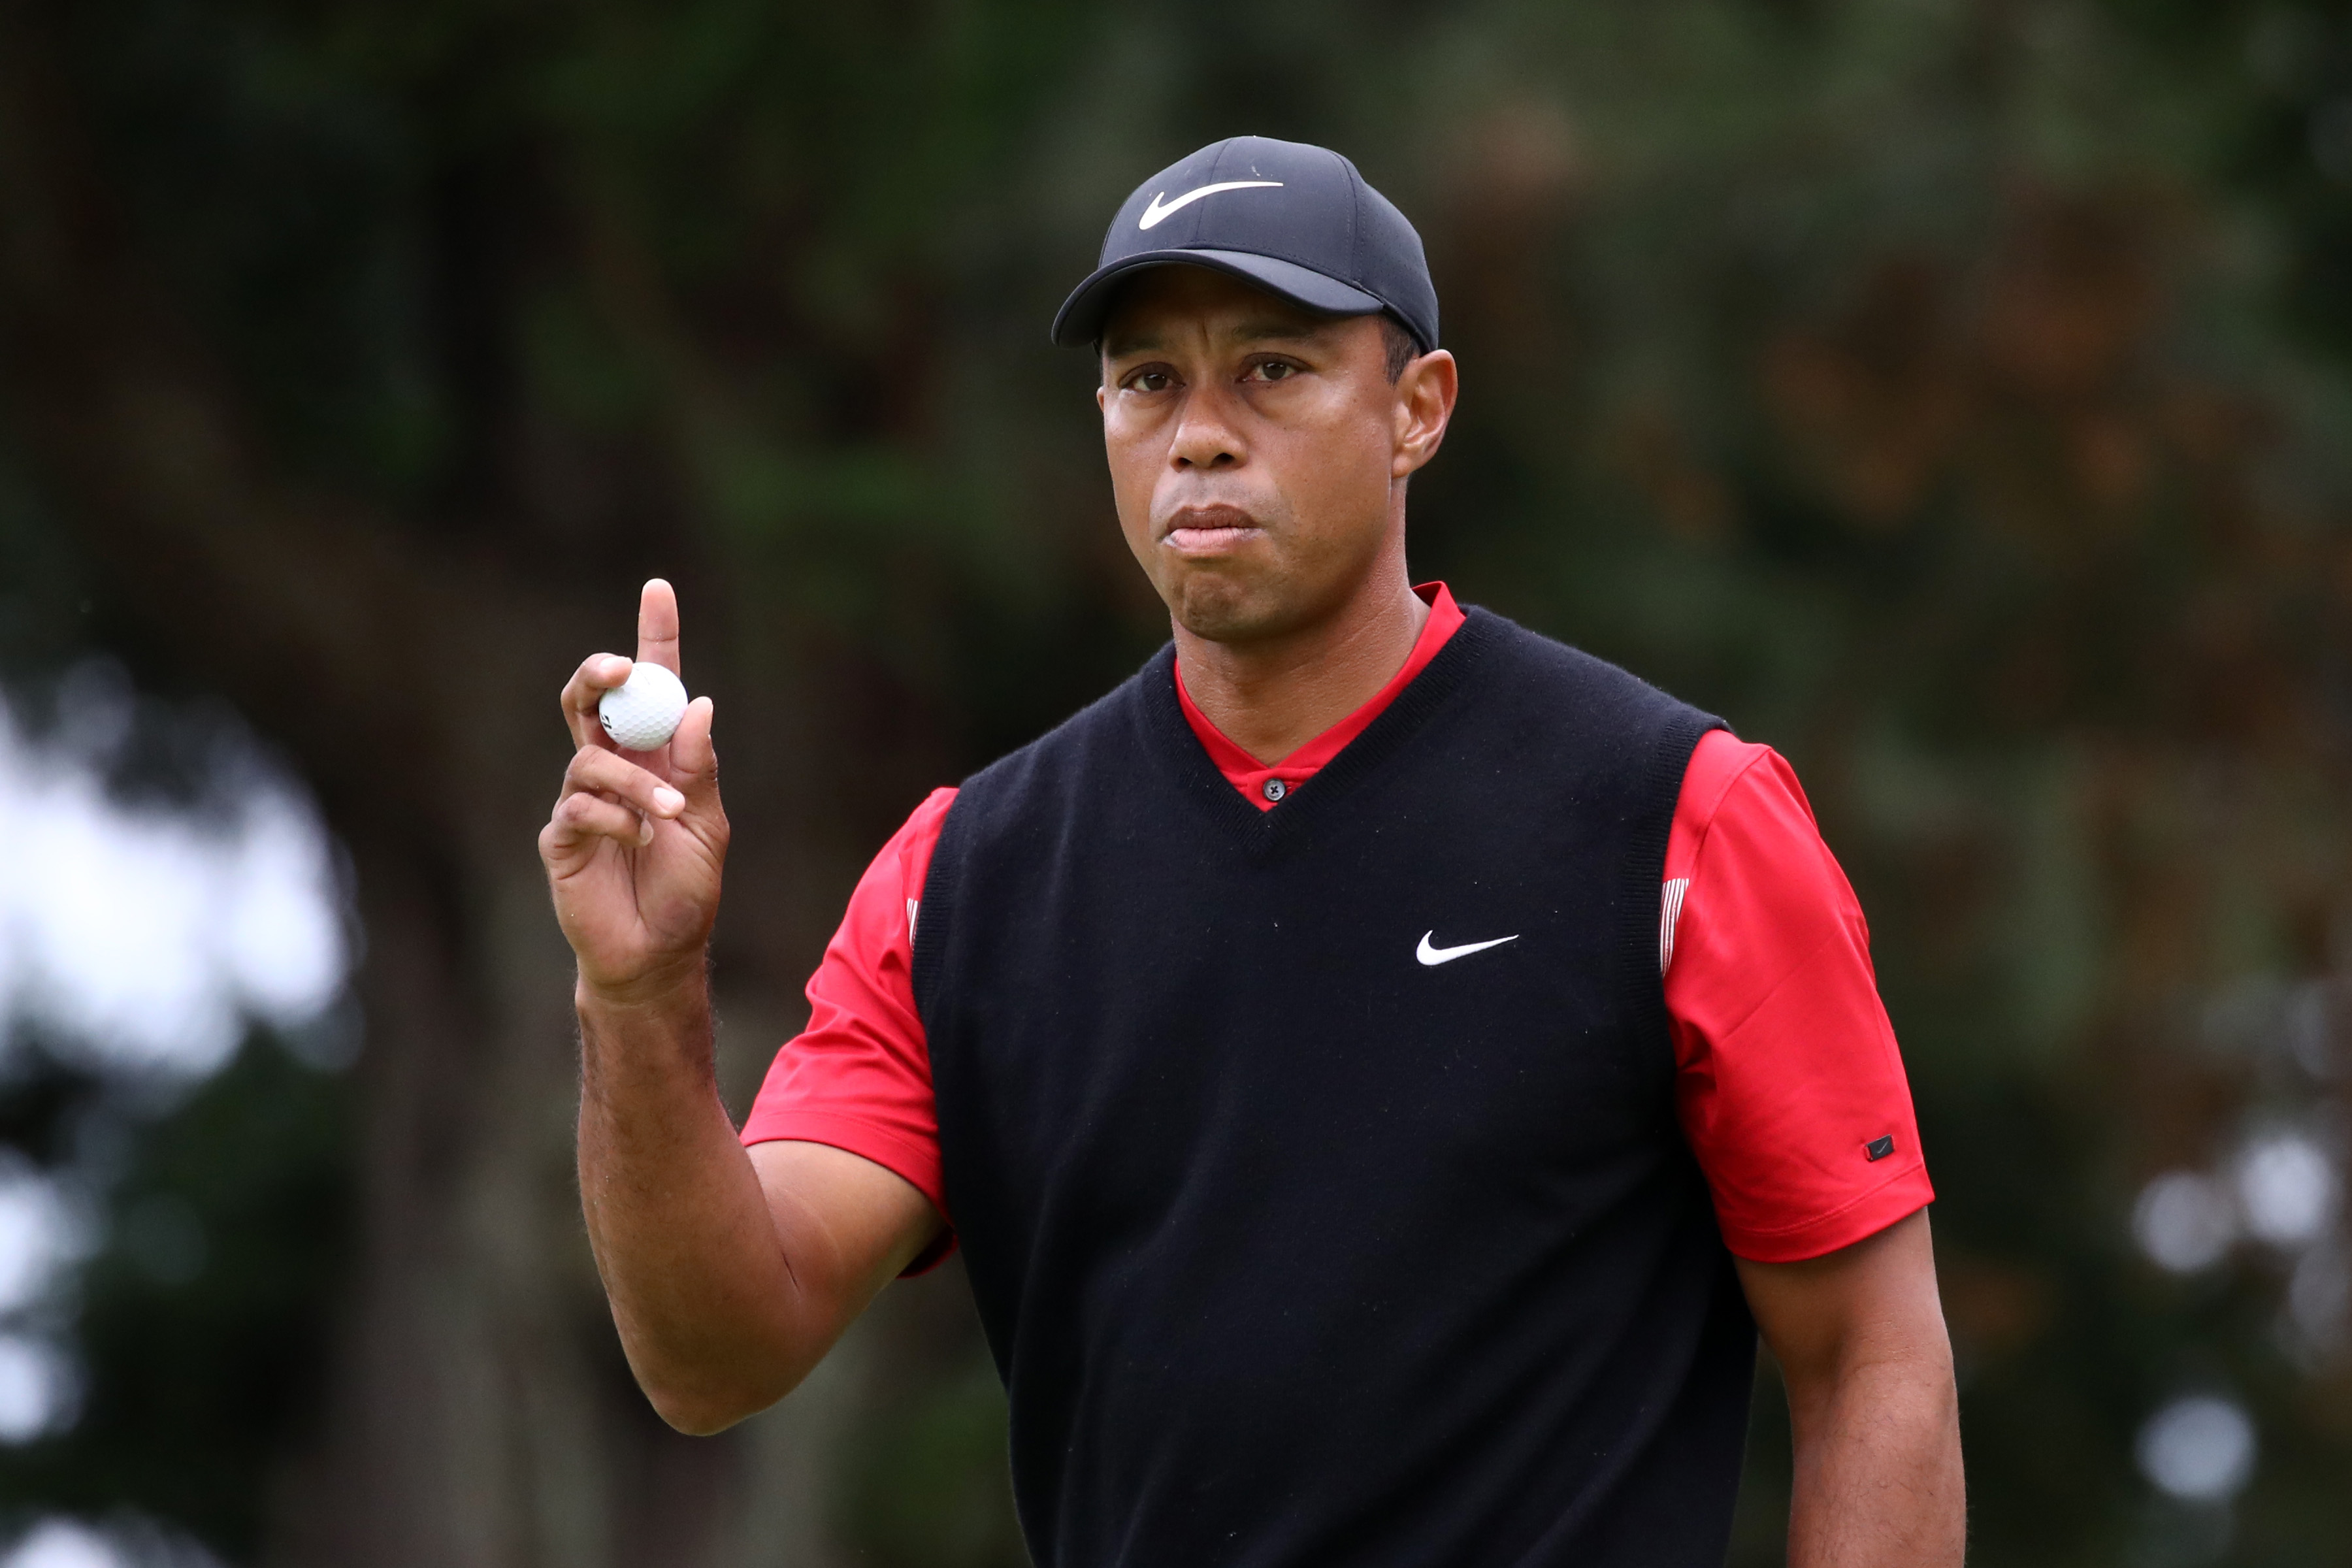 Tiger Woods waves to fans after a hole